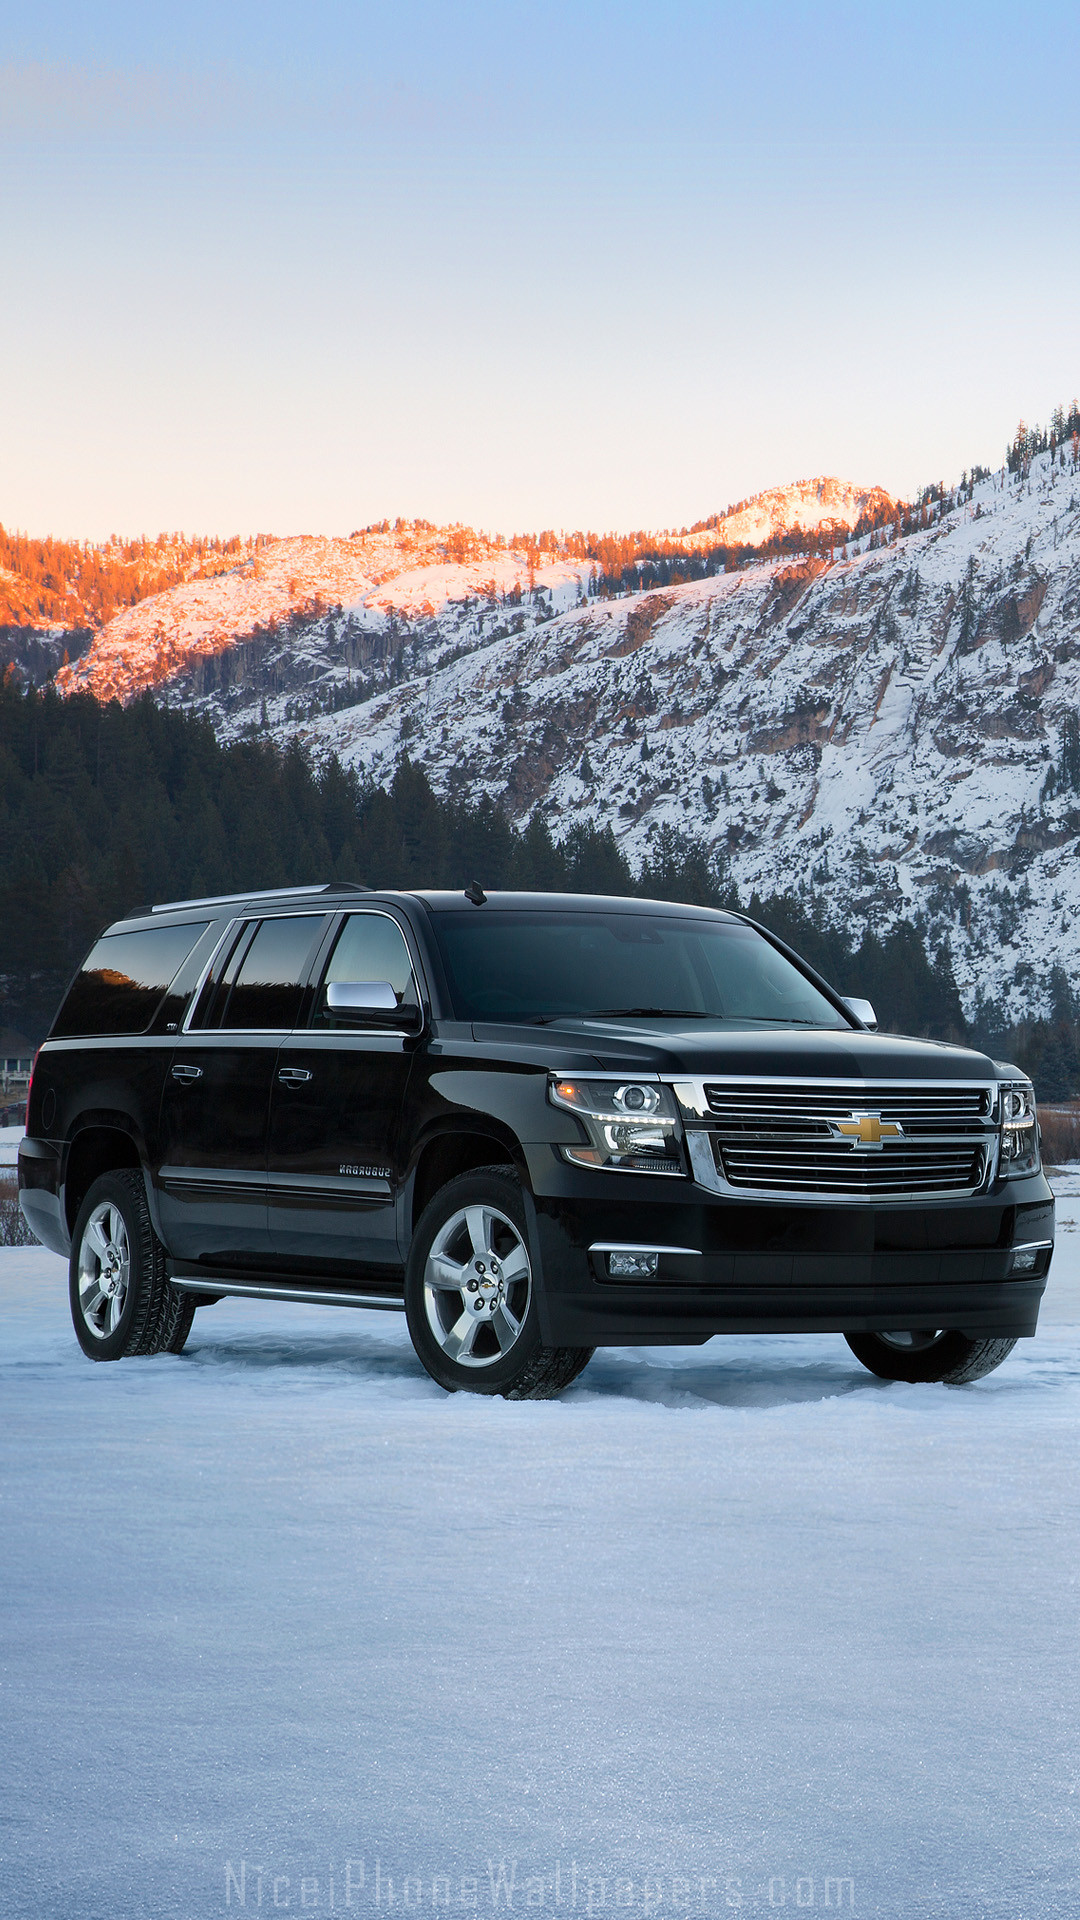 1080x1920 Chevrolet Suburban iPhone 5 6 wallpaper / iPod wallpaper